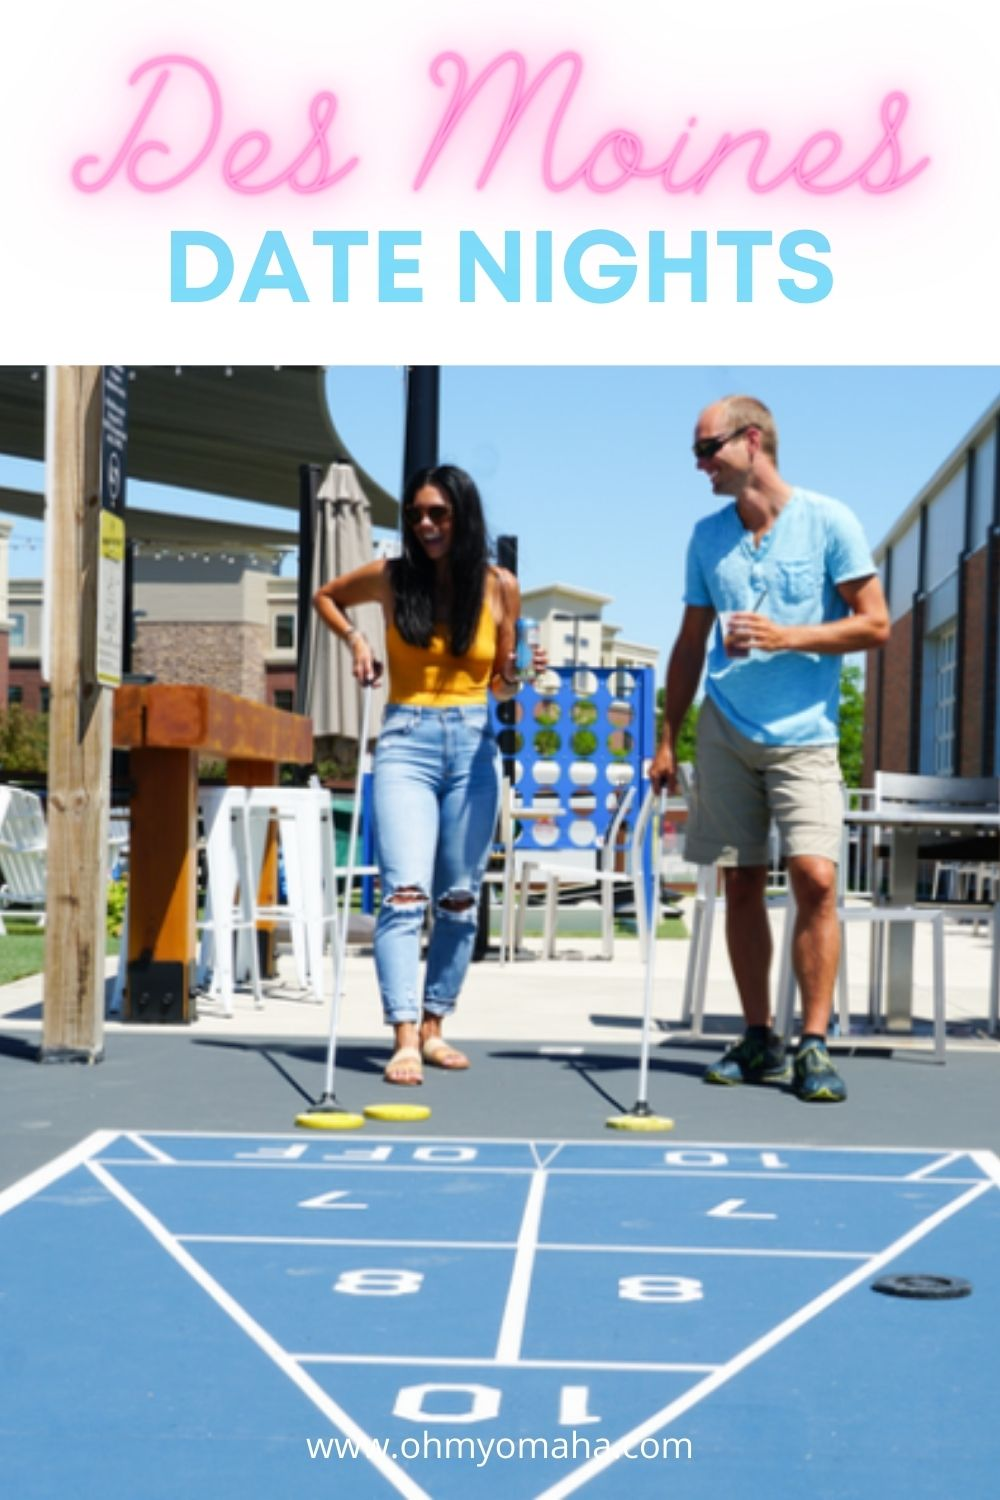 Looking for a unique date in Des Moines or something totally fun like a date at Smash Park? Here are some recommended stops for future date nights or romantic getaways to DSM.